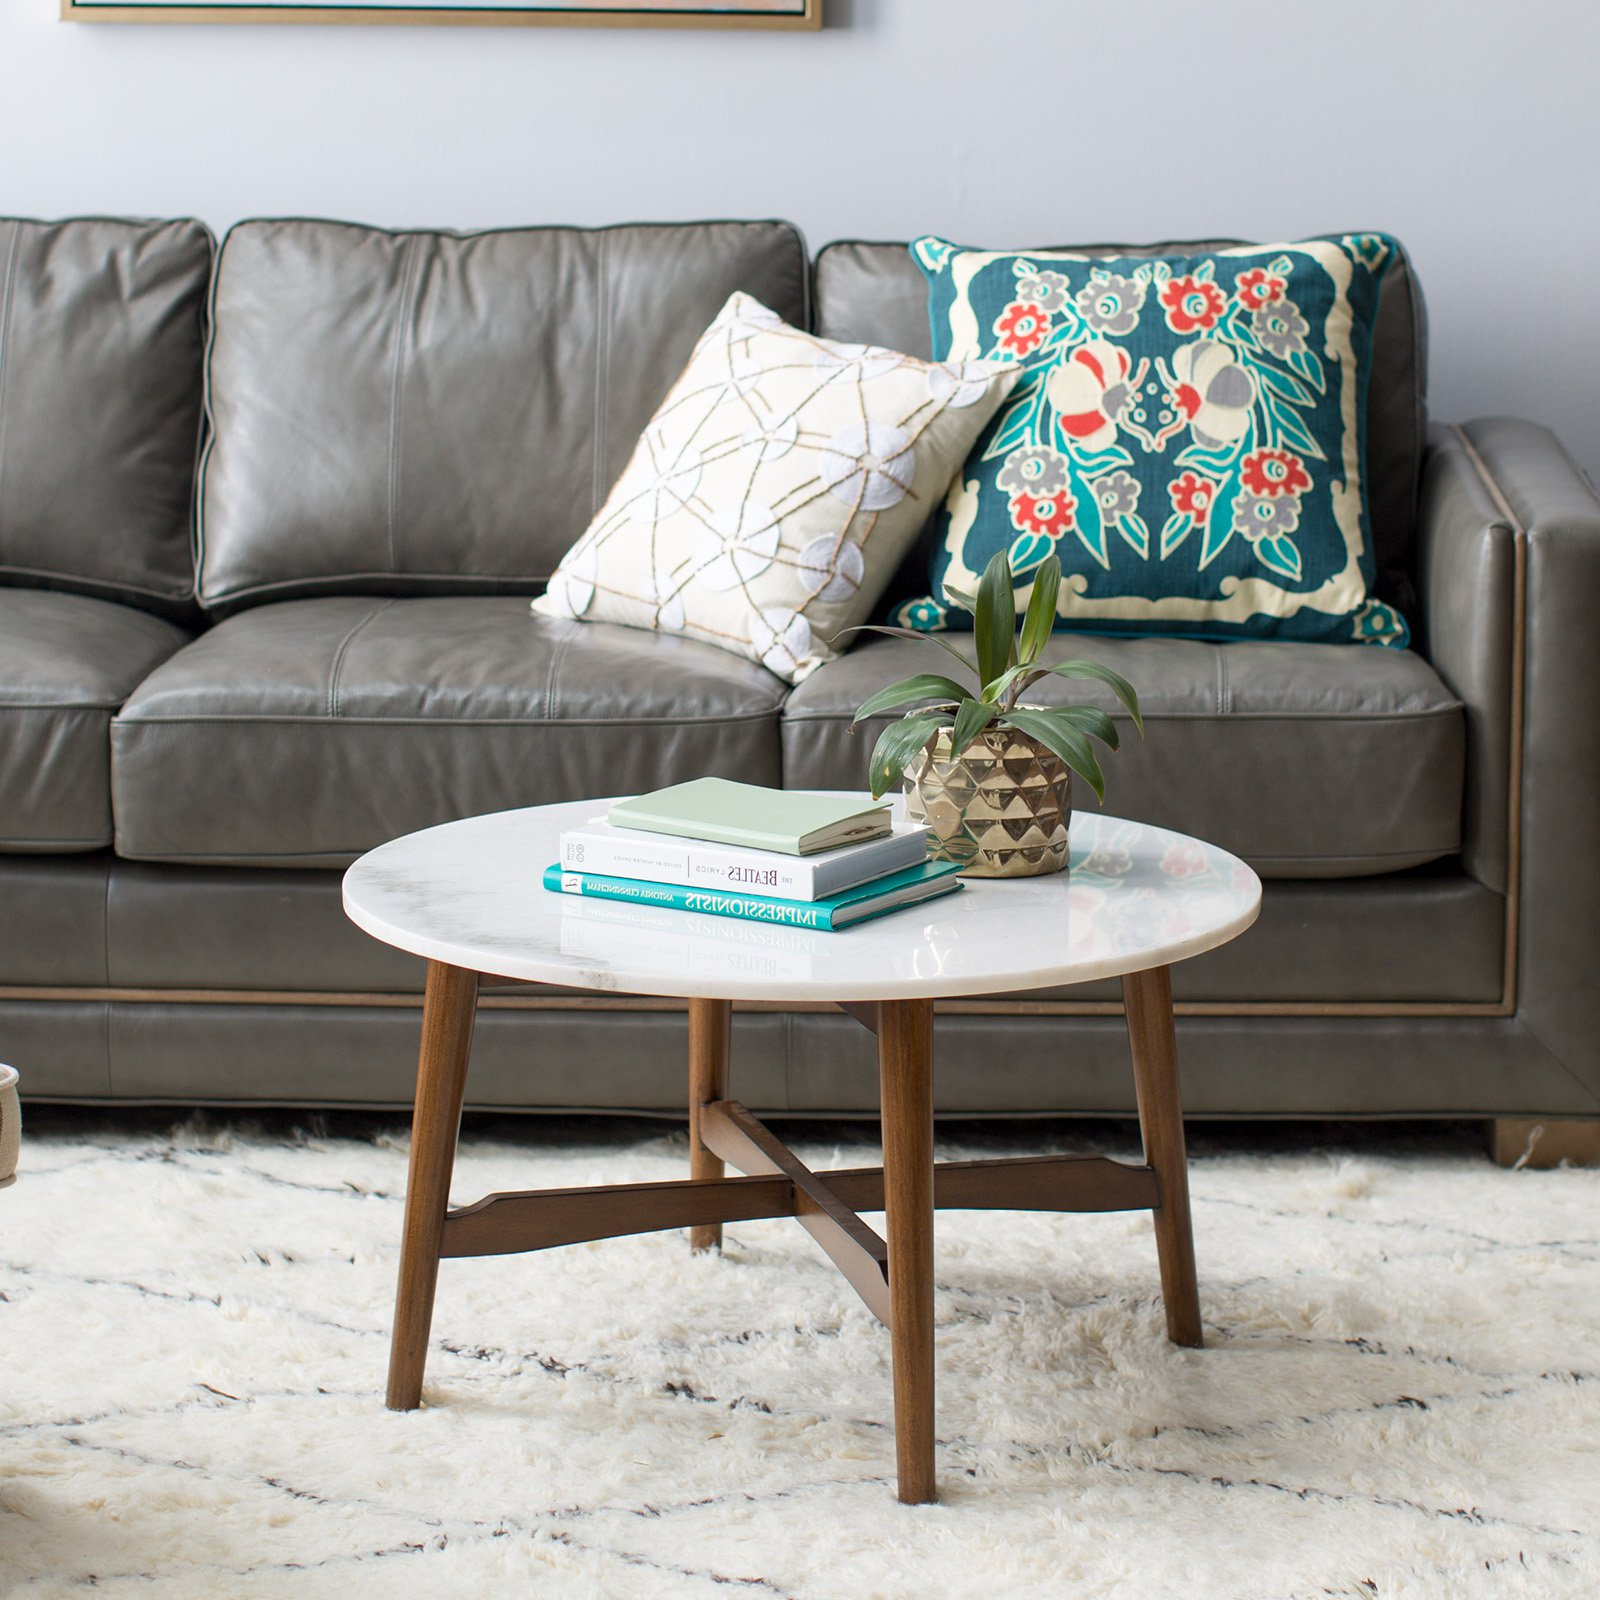 Most Recently Released Belham Living James Round Mid Century Modern Marble Coffee Table Intended For Mid Century Modern Marble Coffee Tables (View 2 of 20)